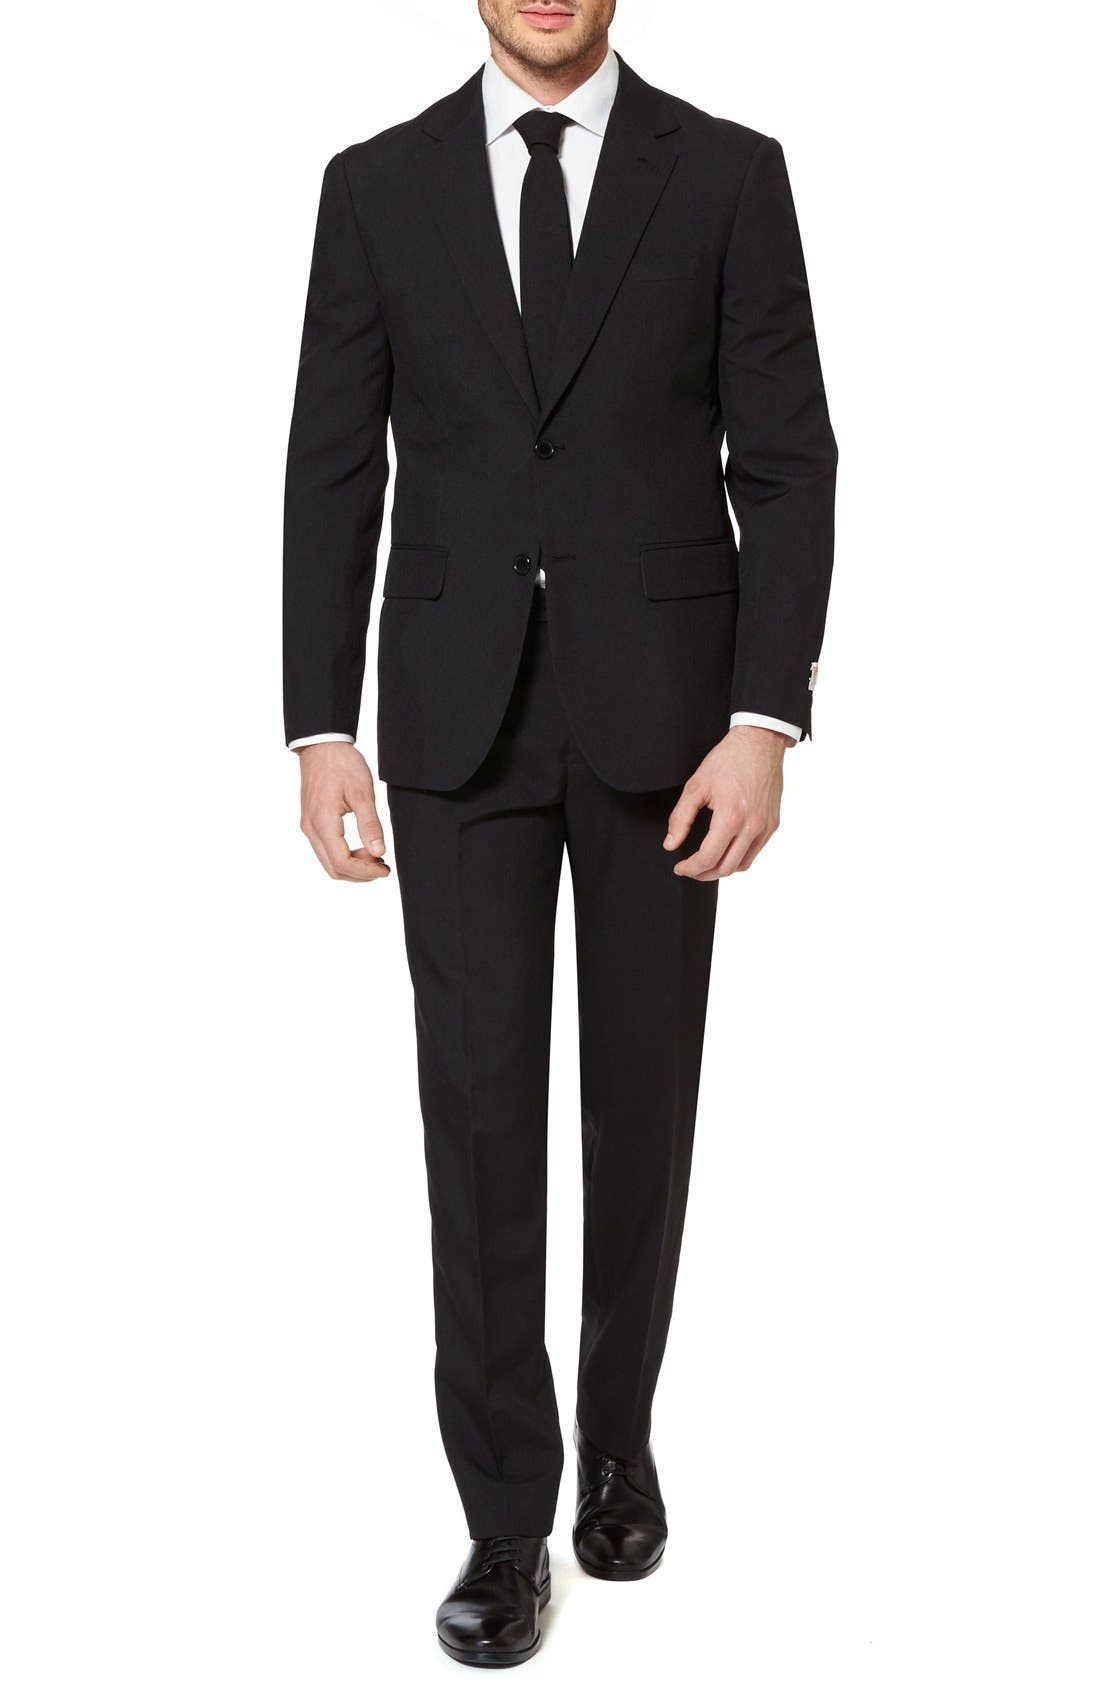 Alternate Image 4  - OppoSuits 'Black Knight' Trim Fit Two-Piece Suit with Tie